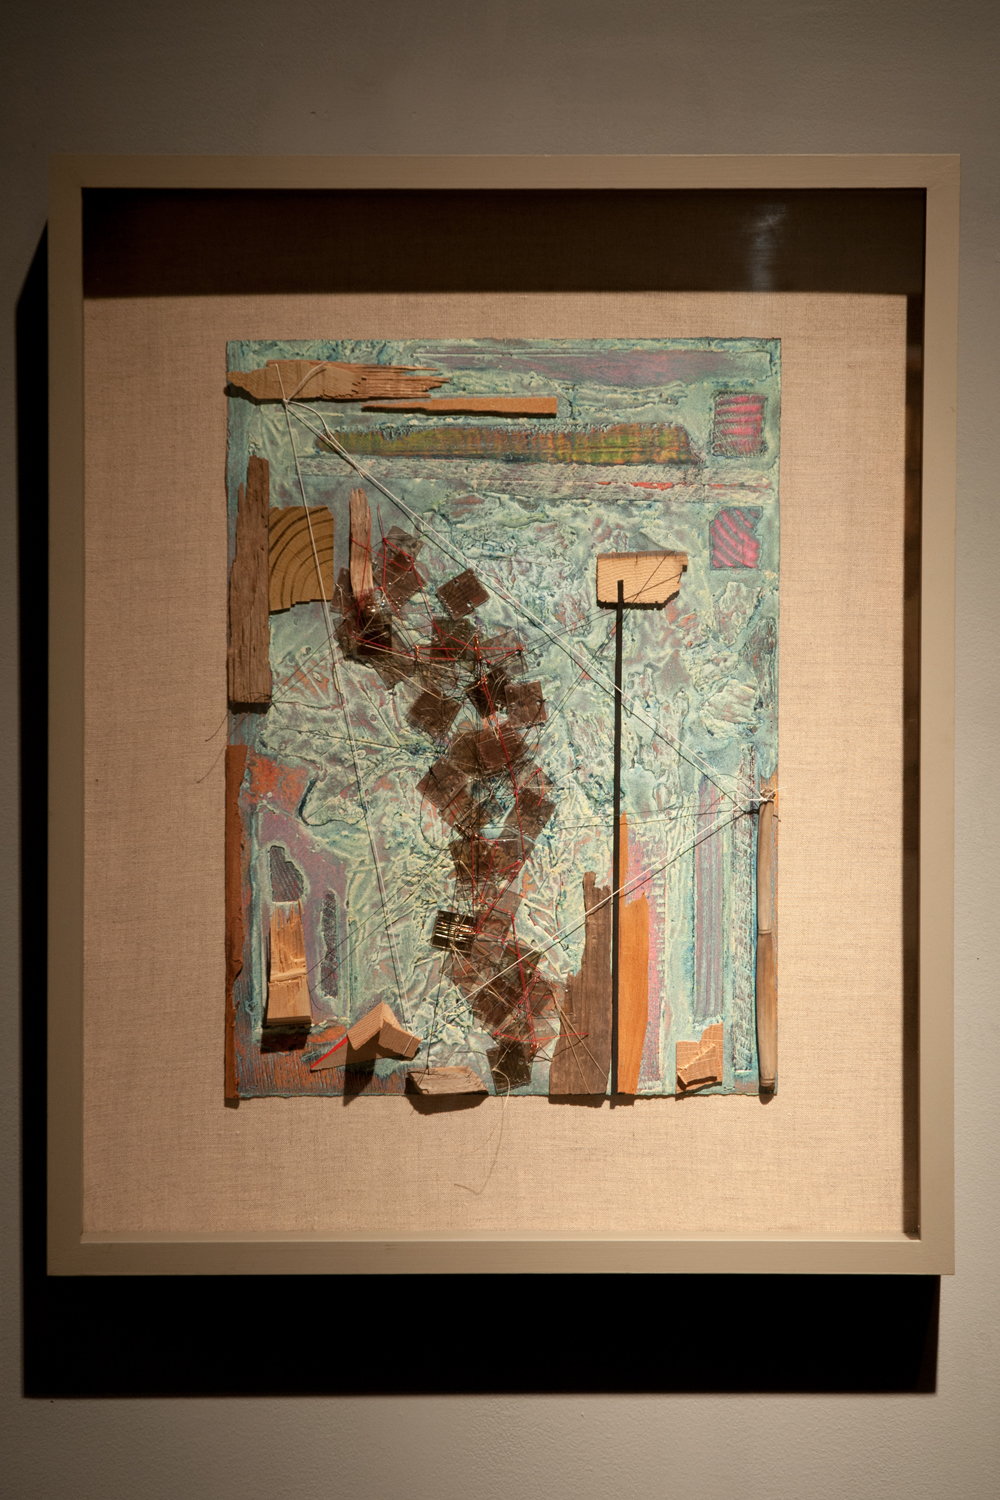 Web of Mishaps, 2016, collagraph monoprint-assemblage, 25¼ x 20½ inches